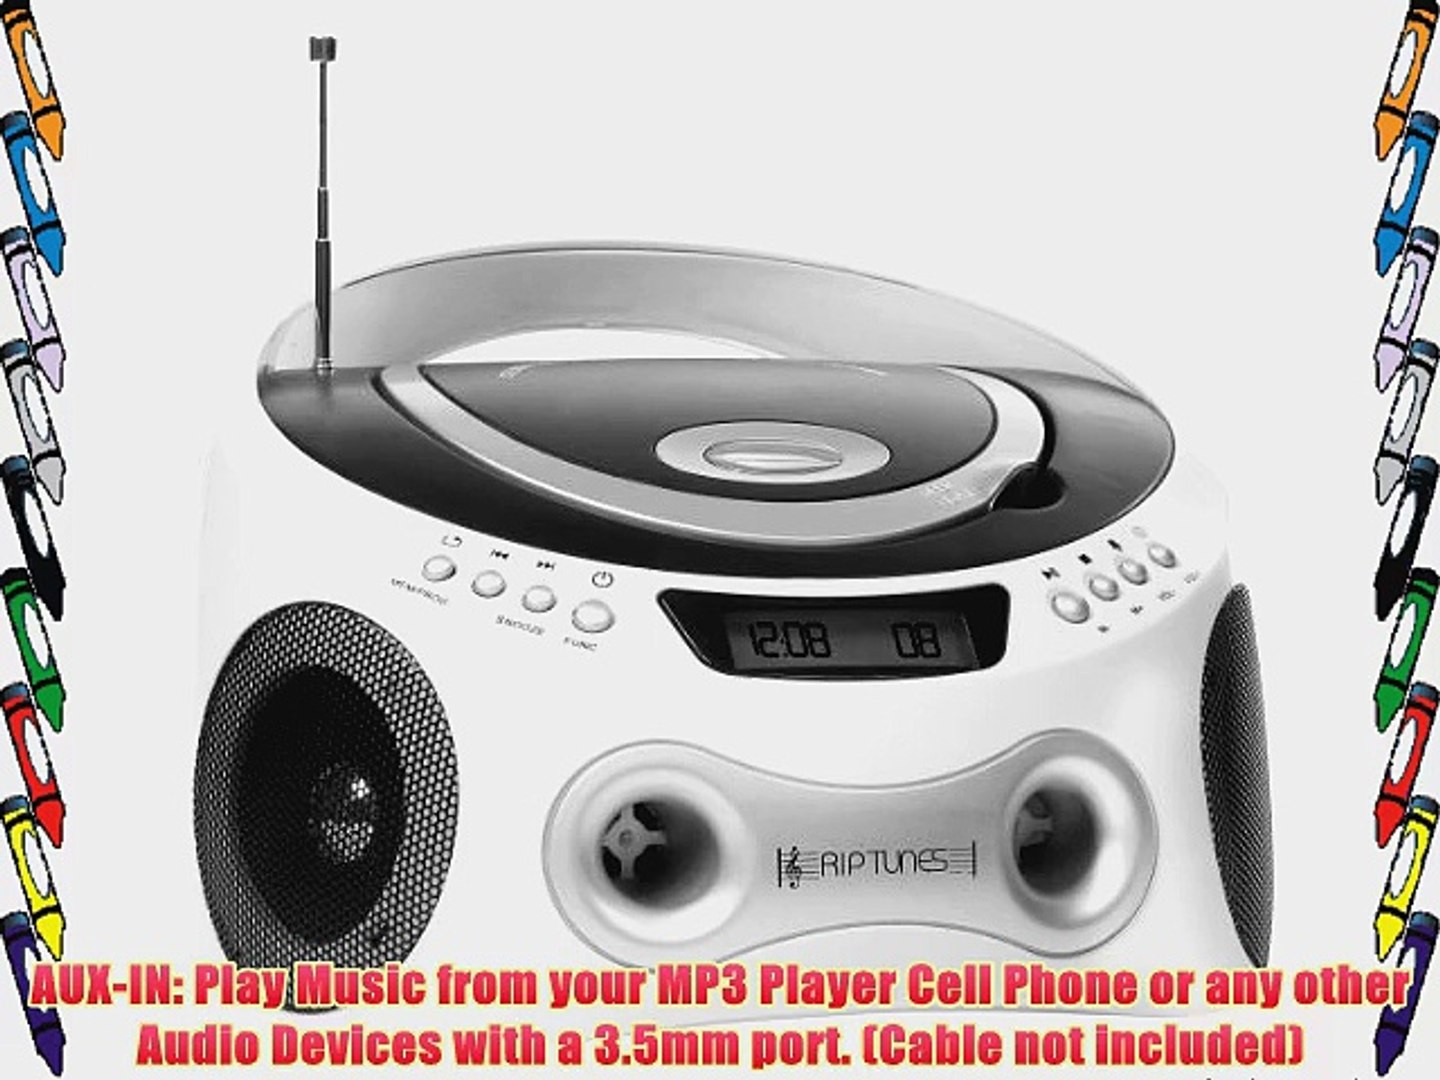 Riptunes CD MP3 Radio Stereo Boombox with Display and Aux-In Port for All MP3 Players (Black/White)